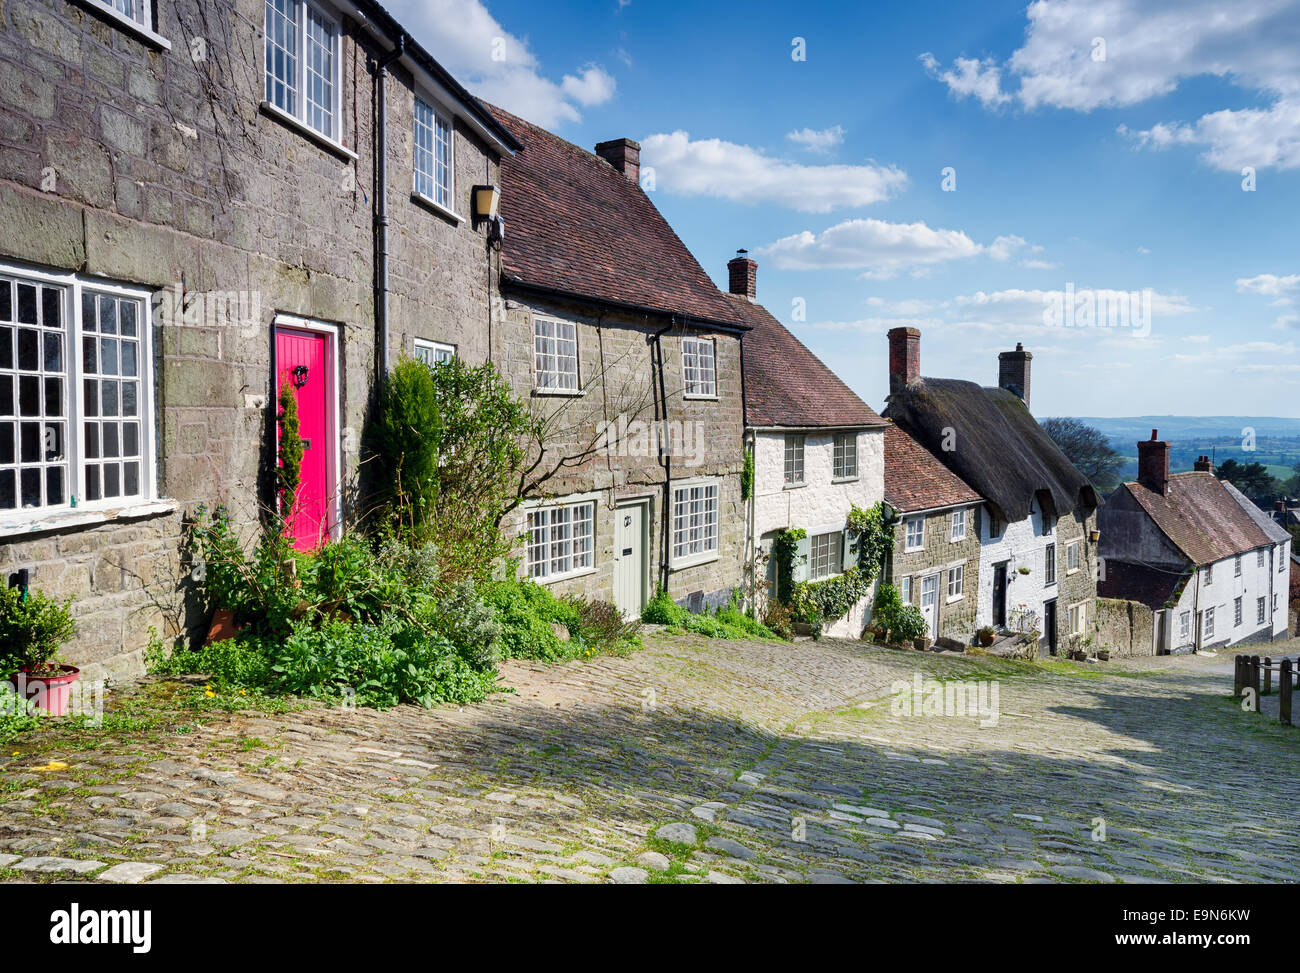 Picturesque English cottages on a cobbled street at Gold Hill in Shaftestbury in Dorset Stock Photo